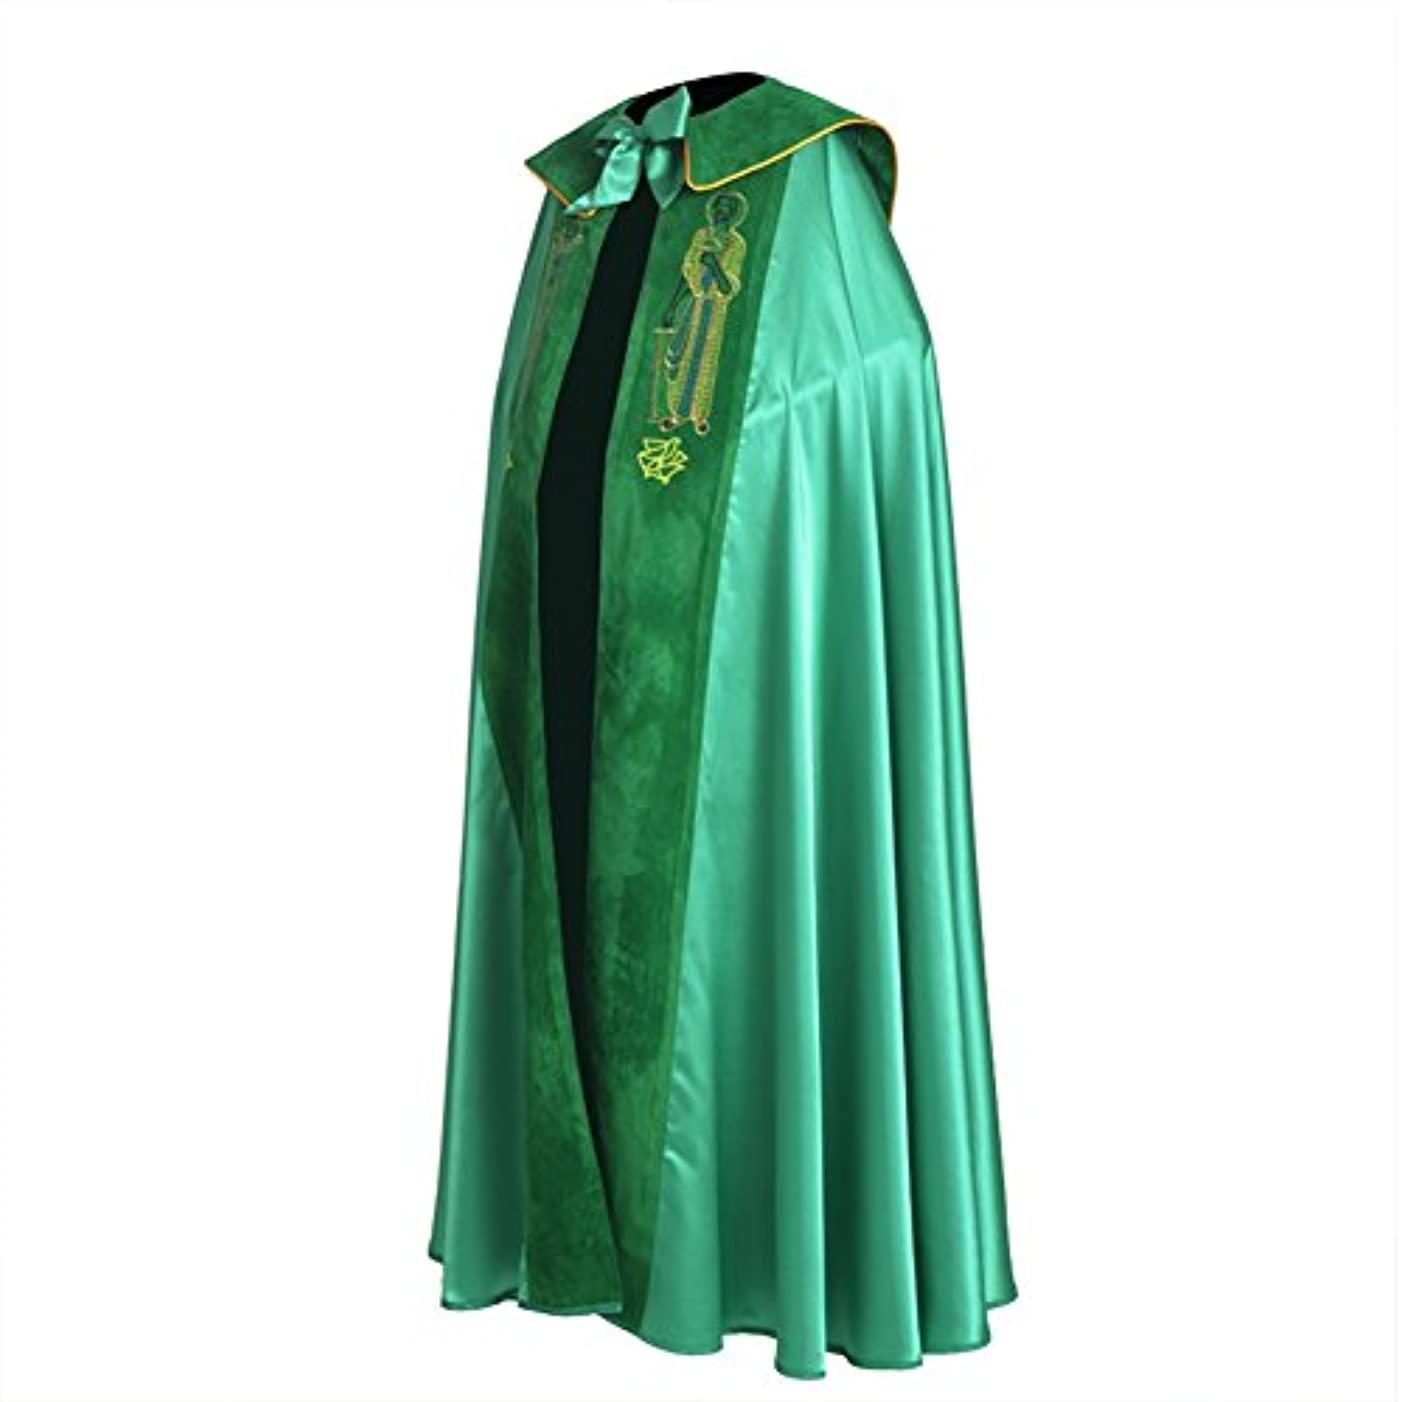 BLESSUME Church Bishop Green Cope liturgical Vestments